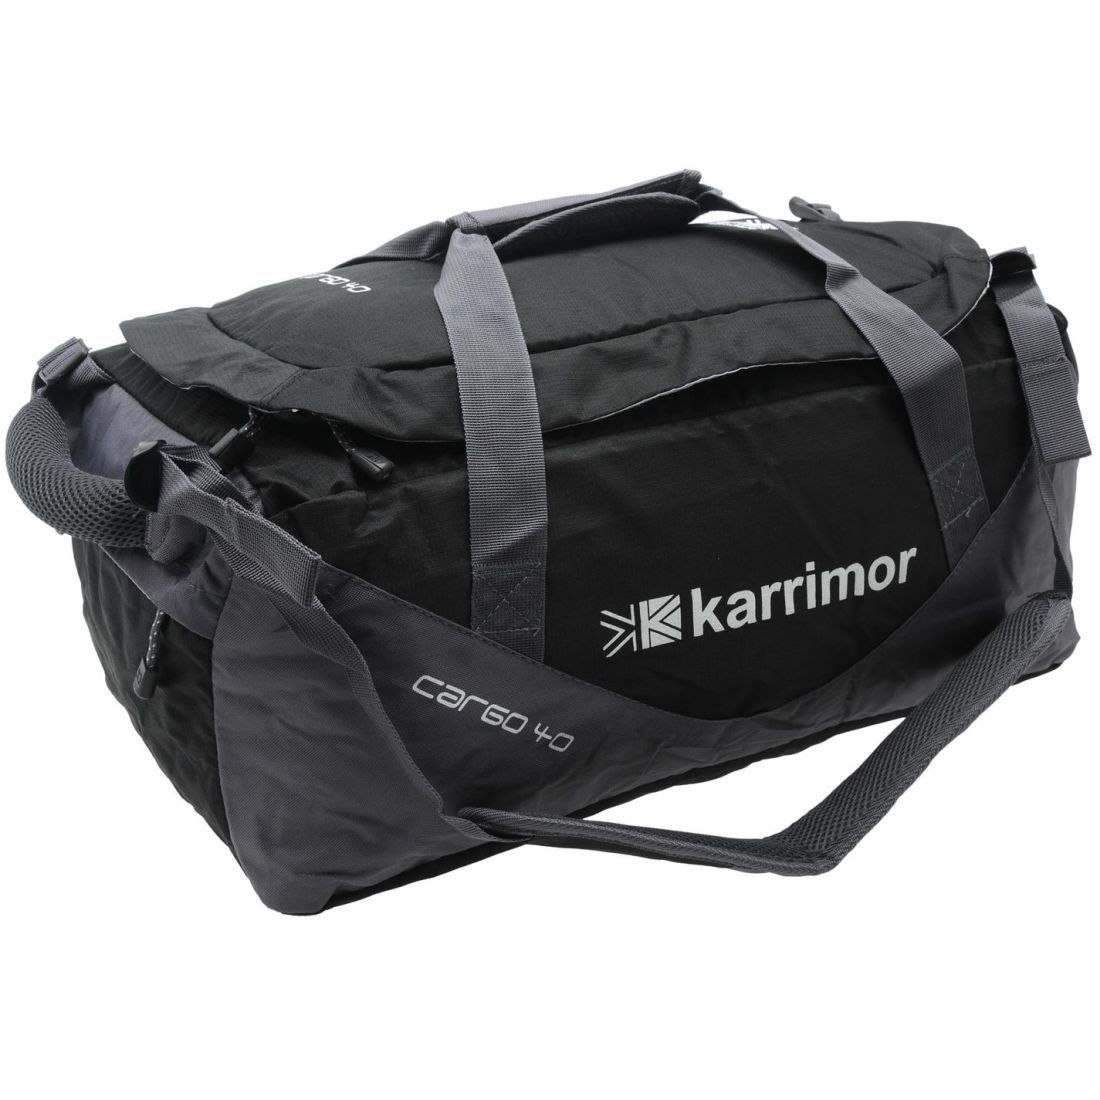 991d07f9d2 Image is loading Karrimor-Cargo-40-Bag-Holdall-Zip-Mesh-Outdoor